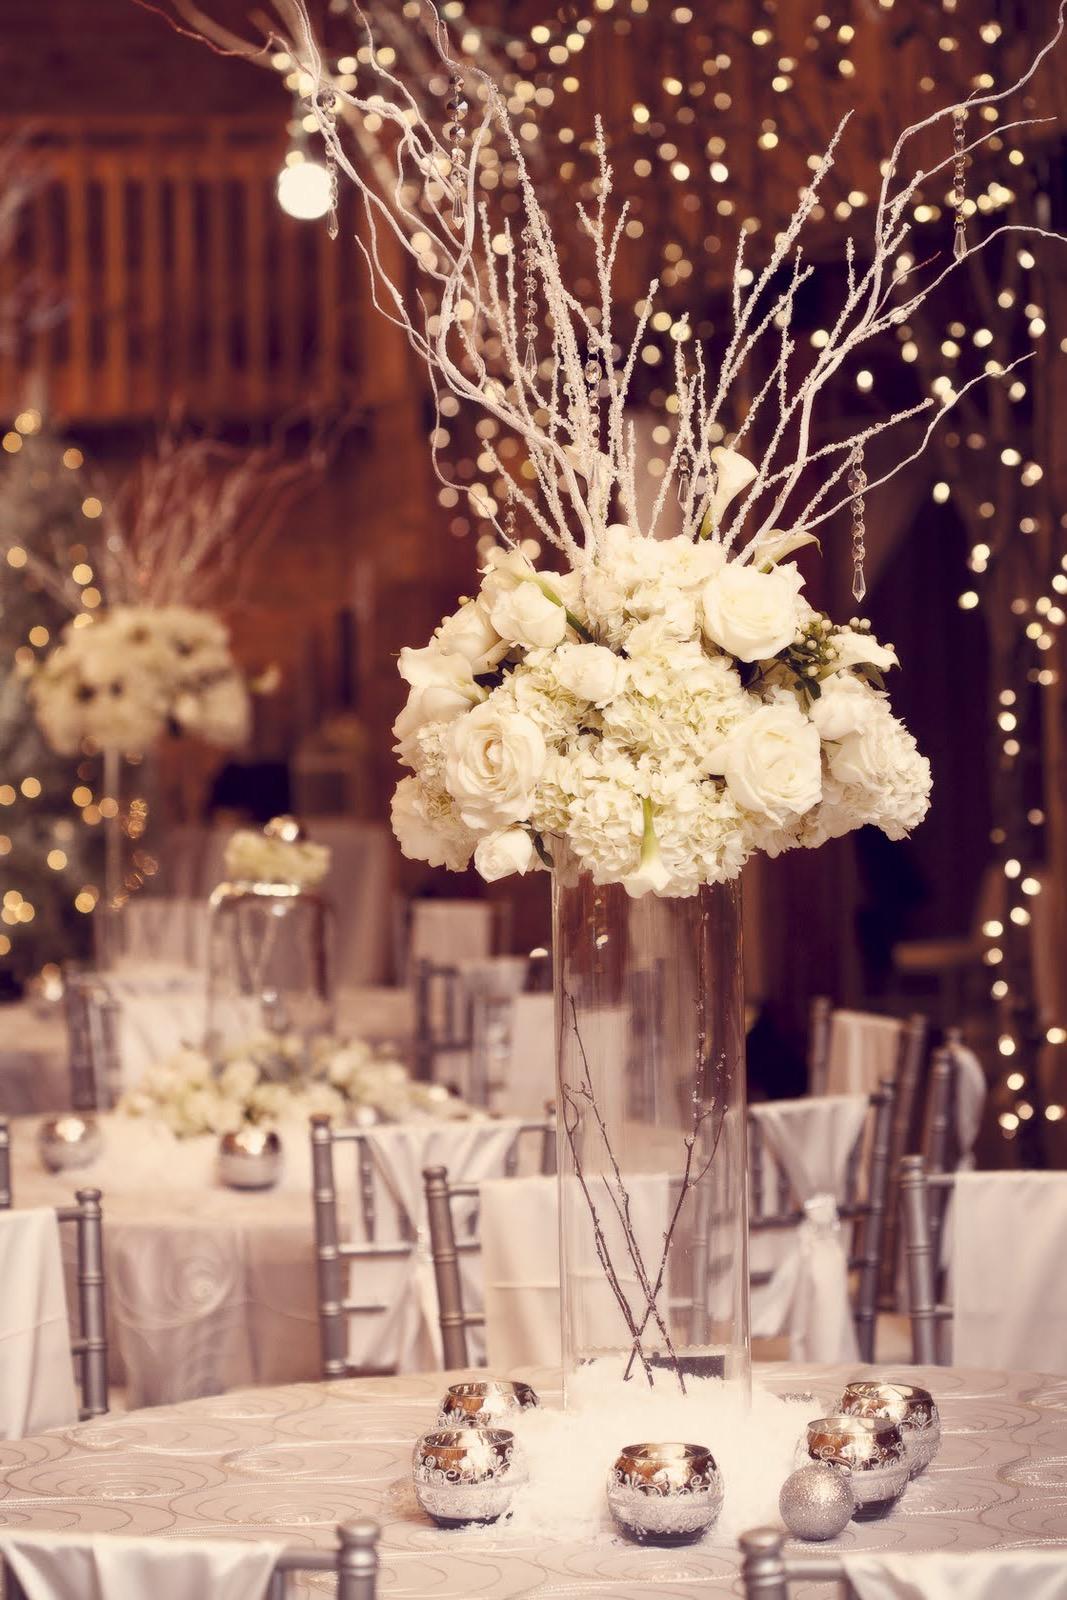 Tall Wedding Centerpieces With Branches And White Flower (Image 26 of 30)